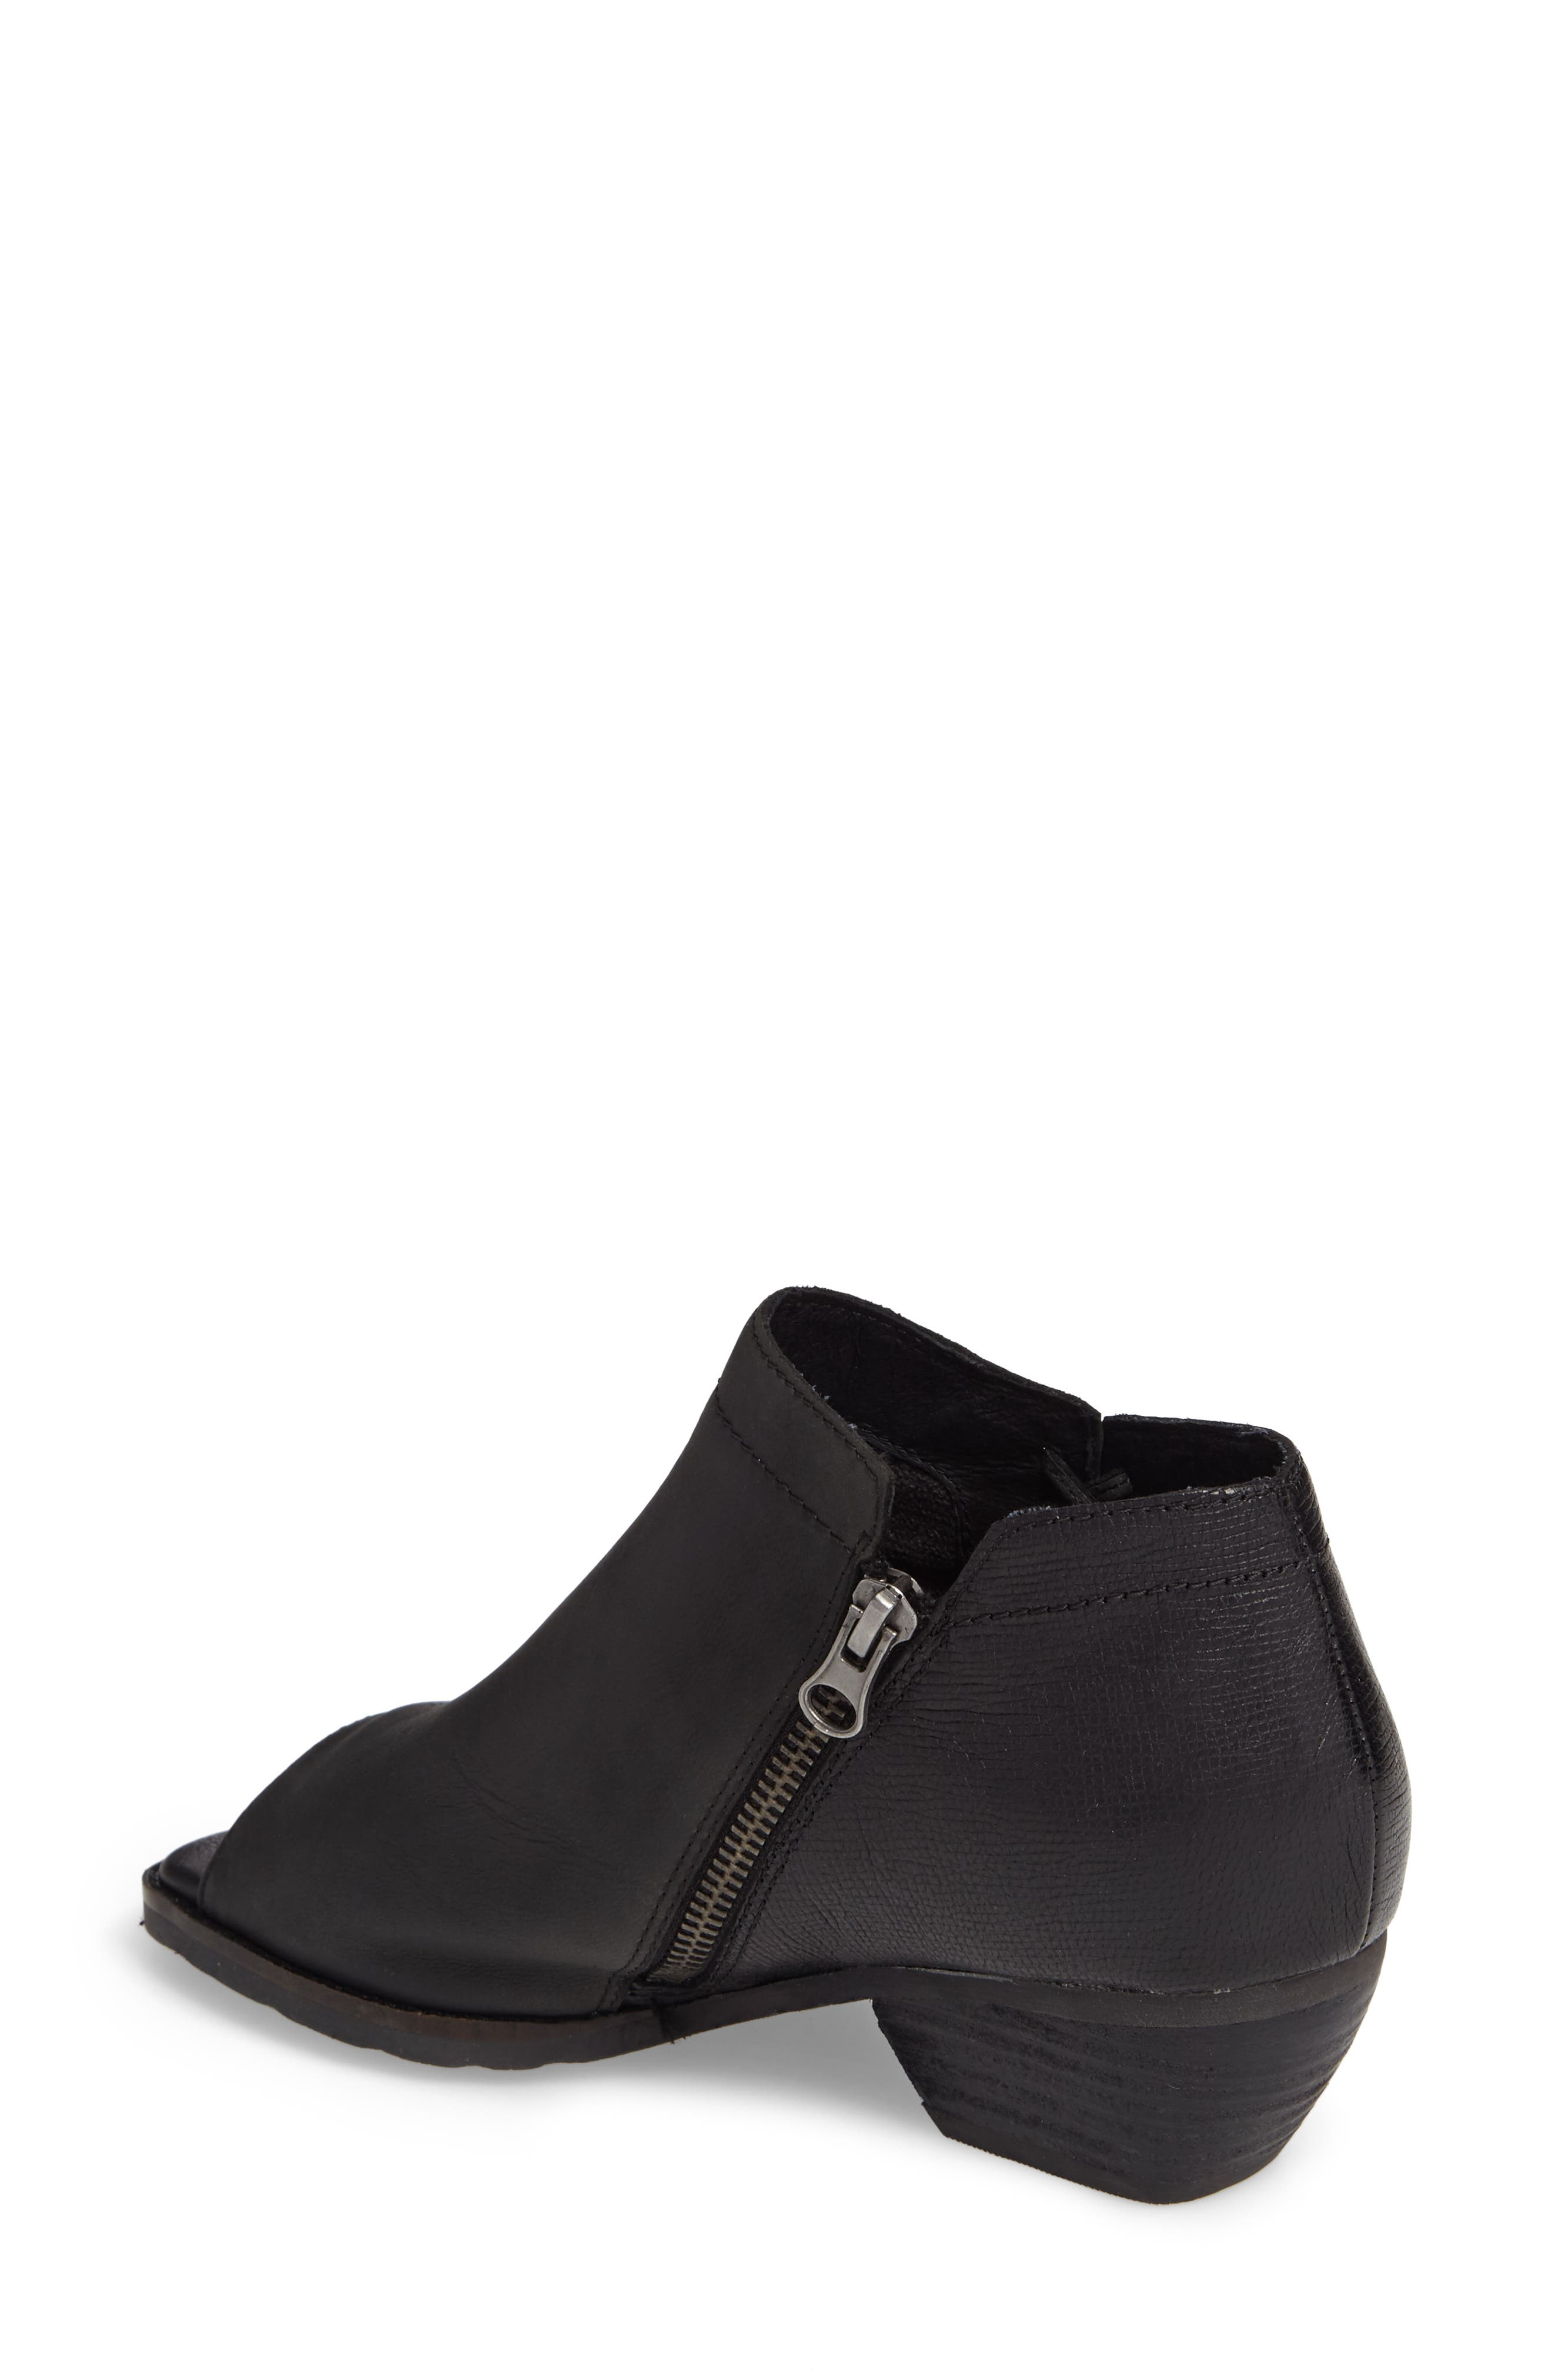 Truckage Open Toe Bootie,                             Alternate thumbnail 2, color,                             BLACK LEATHER